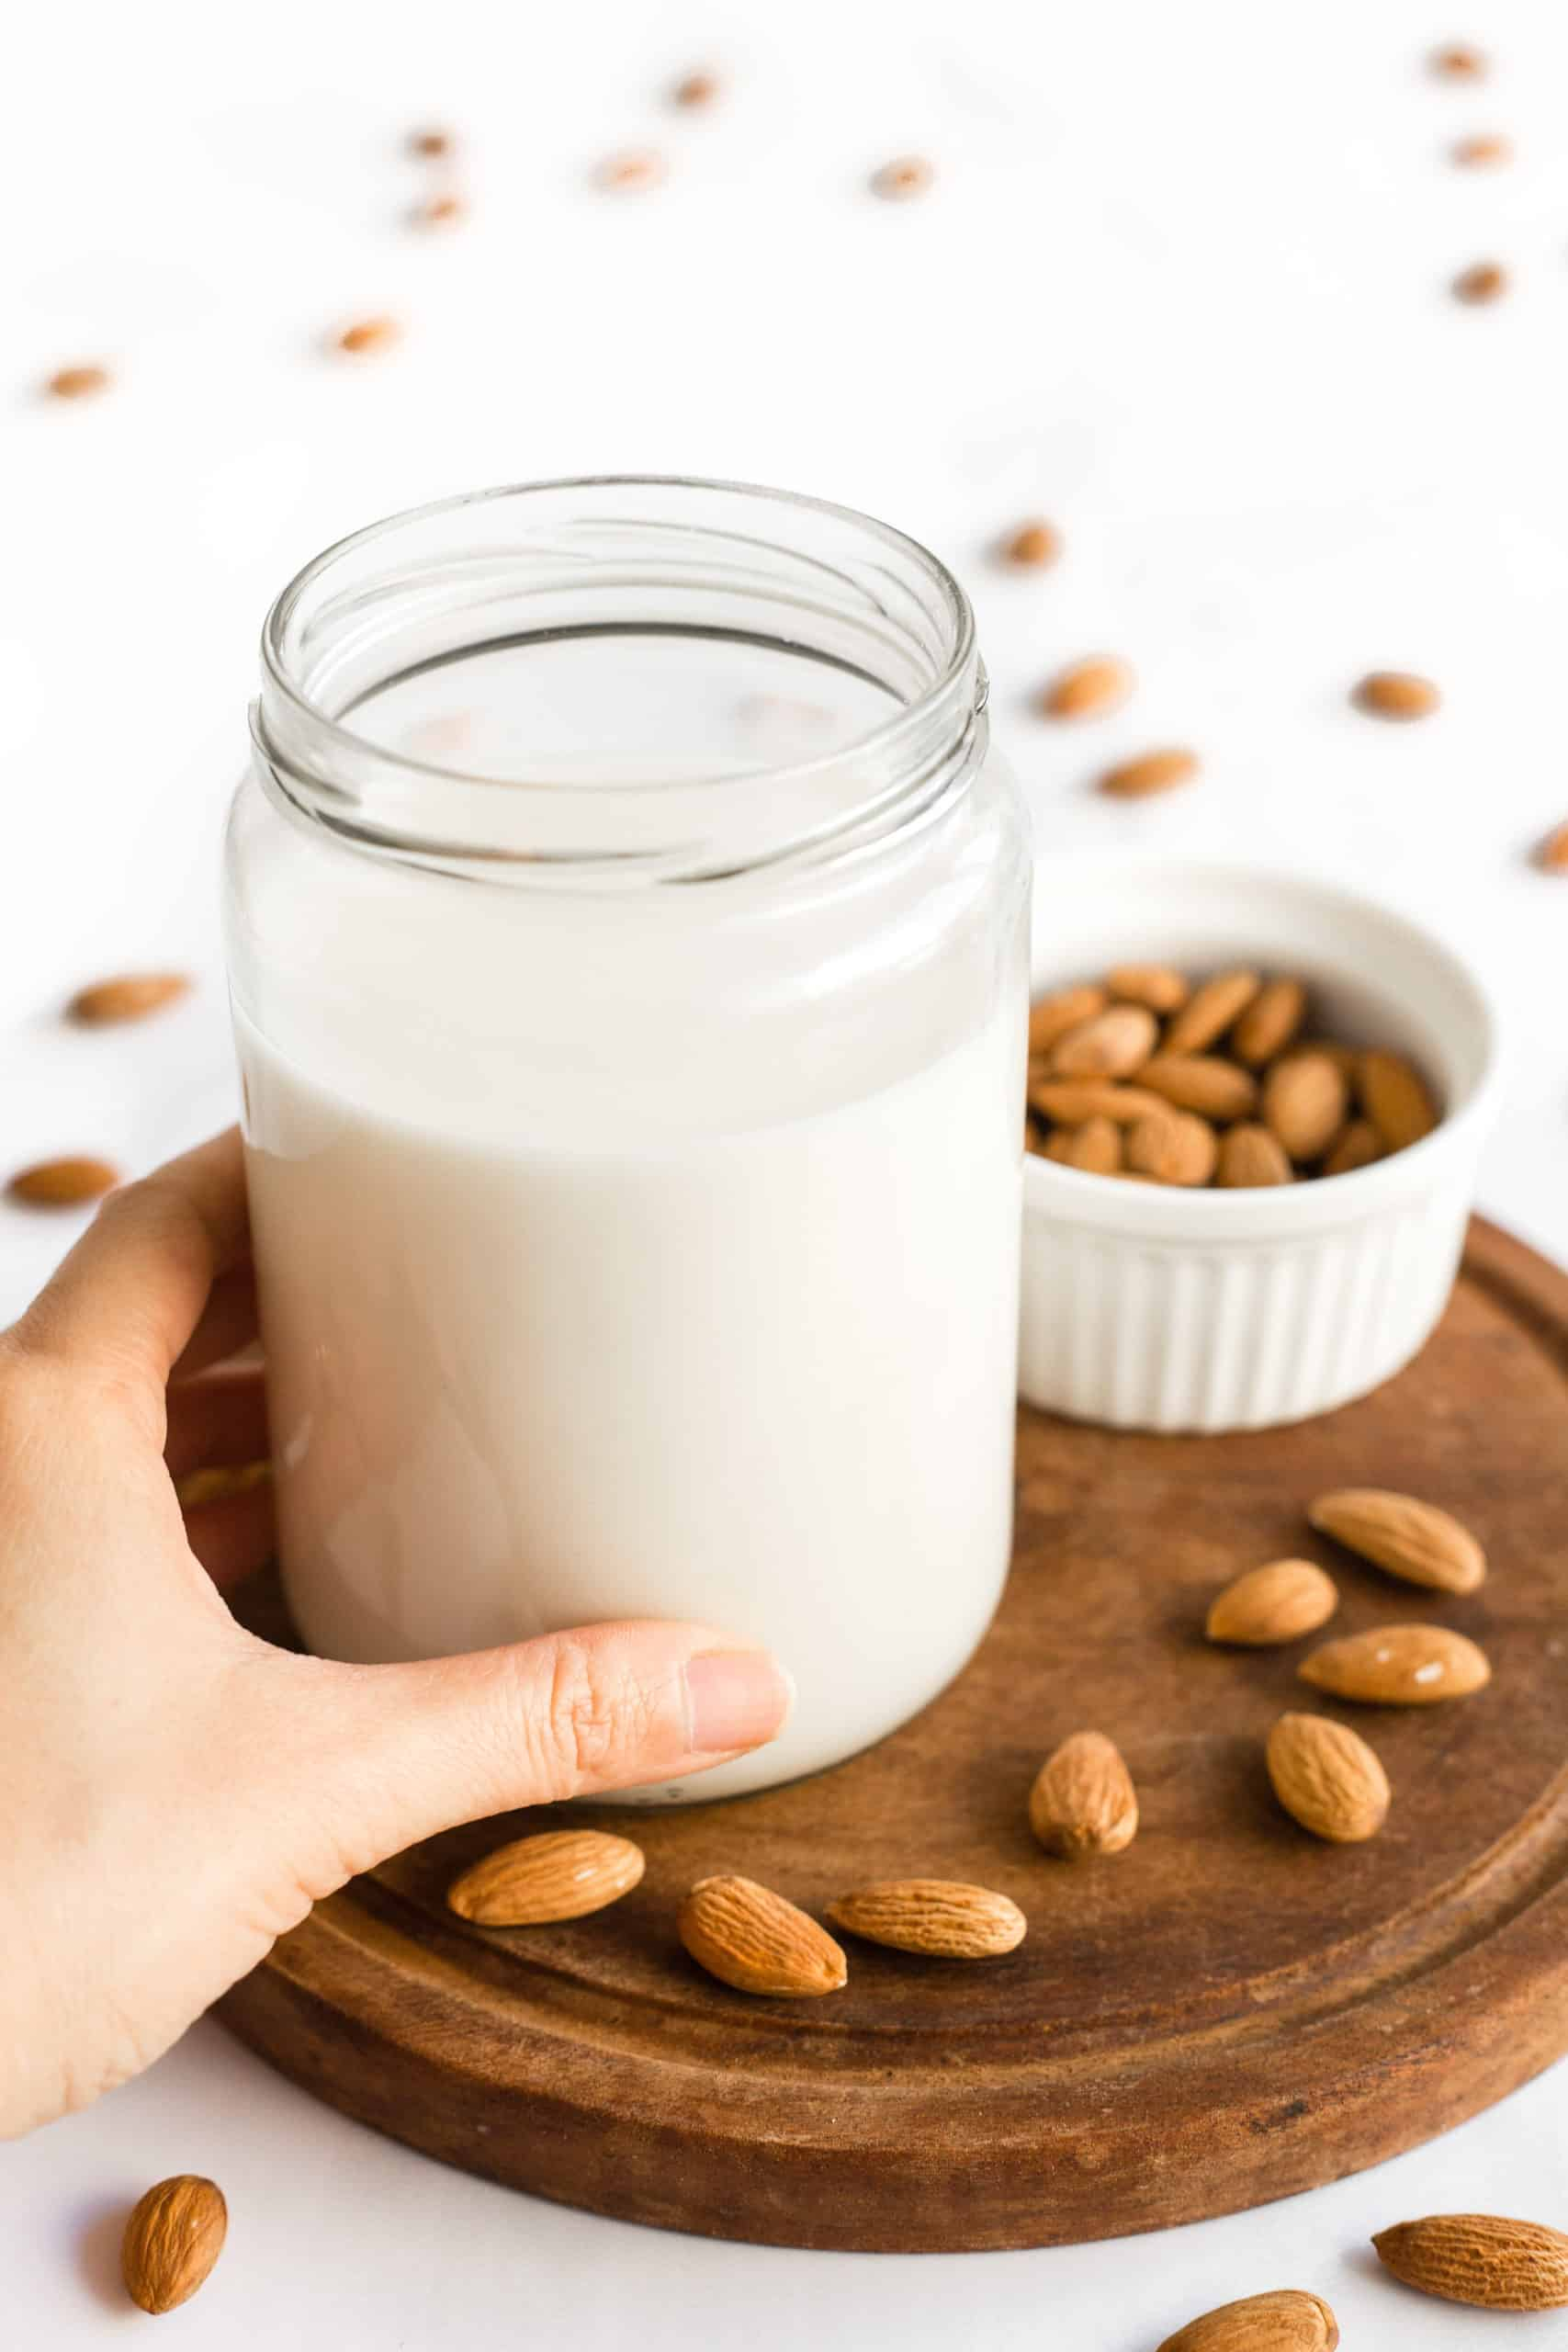 Hand holding a jar of homemade almond milk.